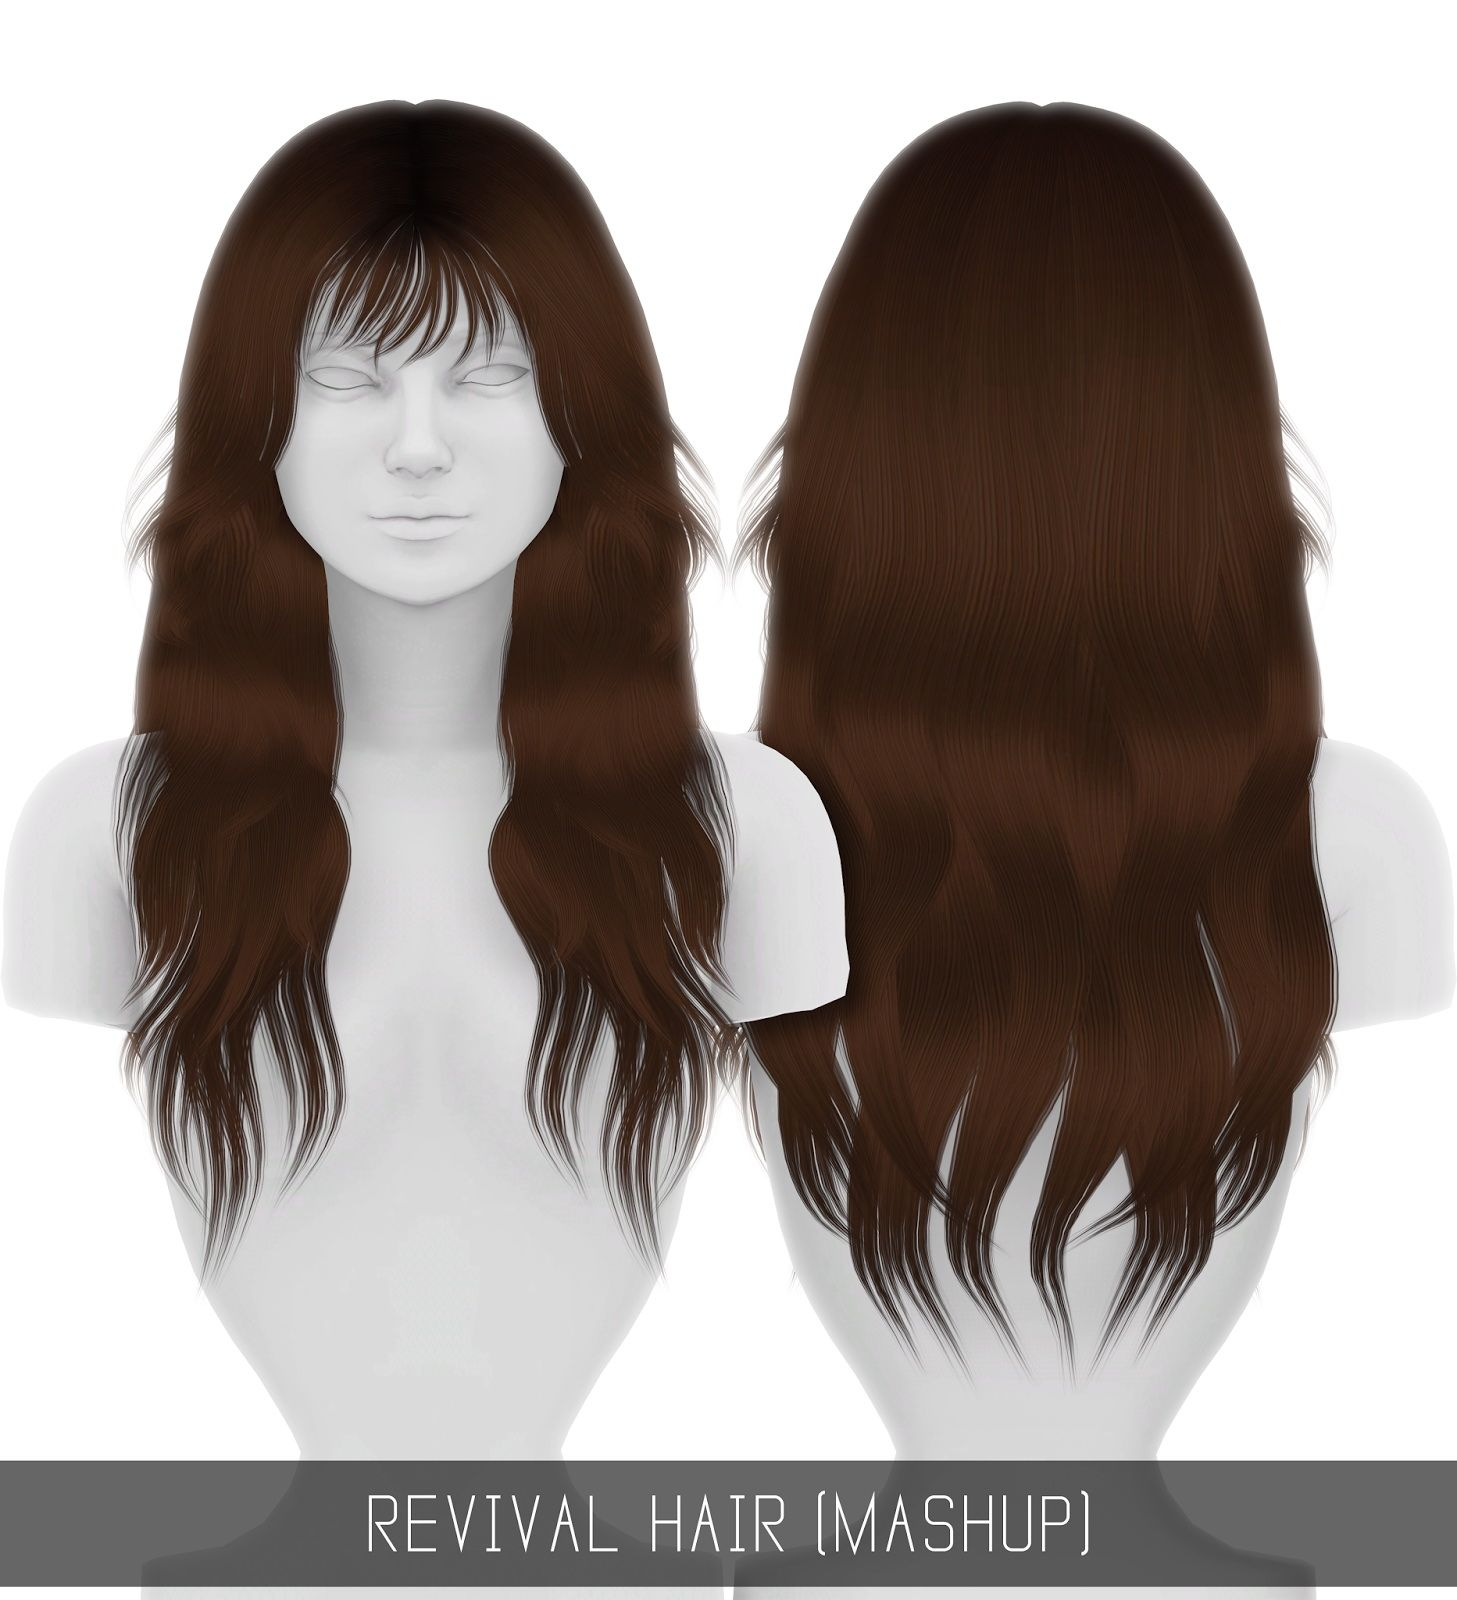 Curly Hair Download Sims 4 Cc: Sims 4 Toddler, Sims 4, Cc